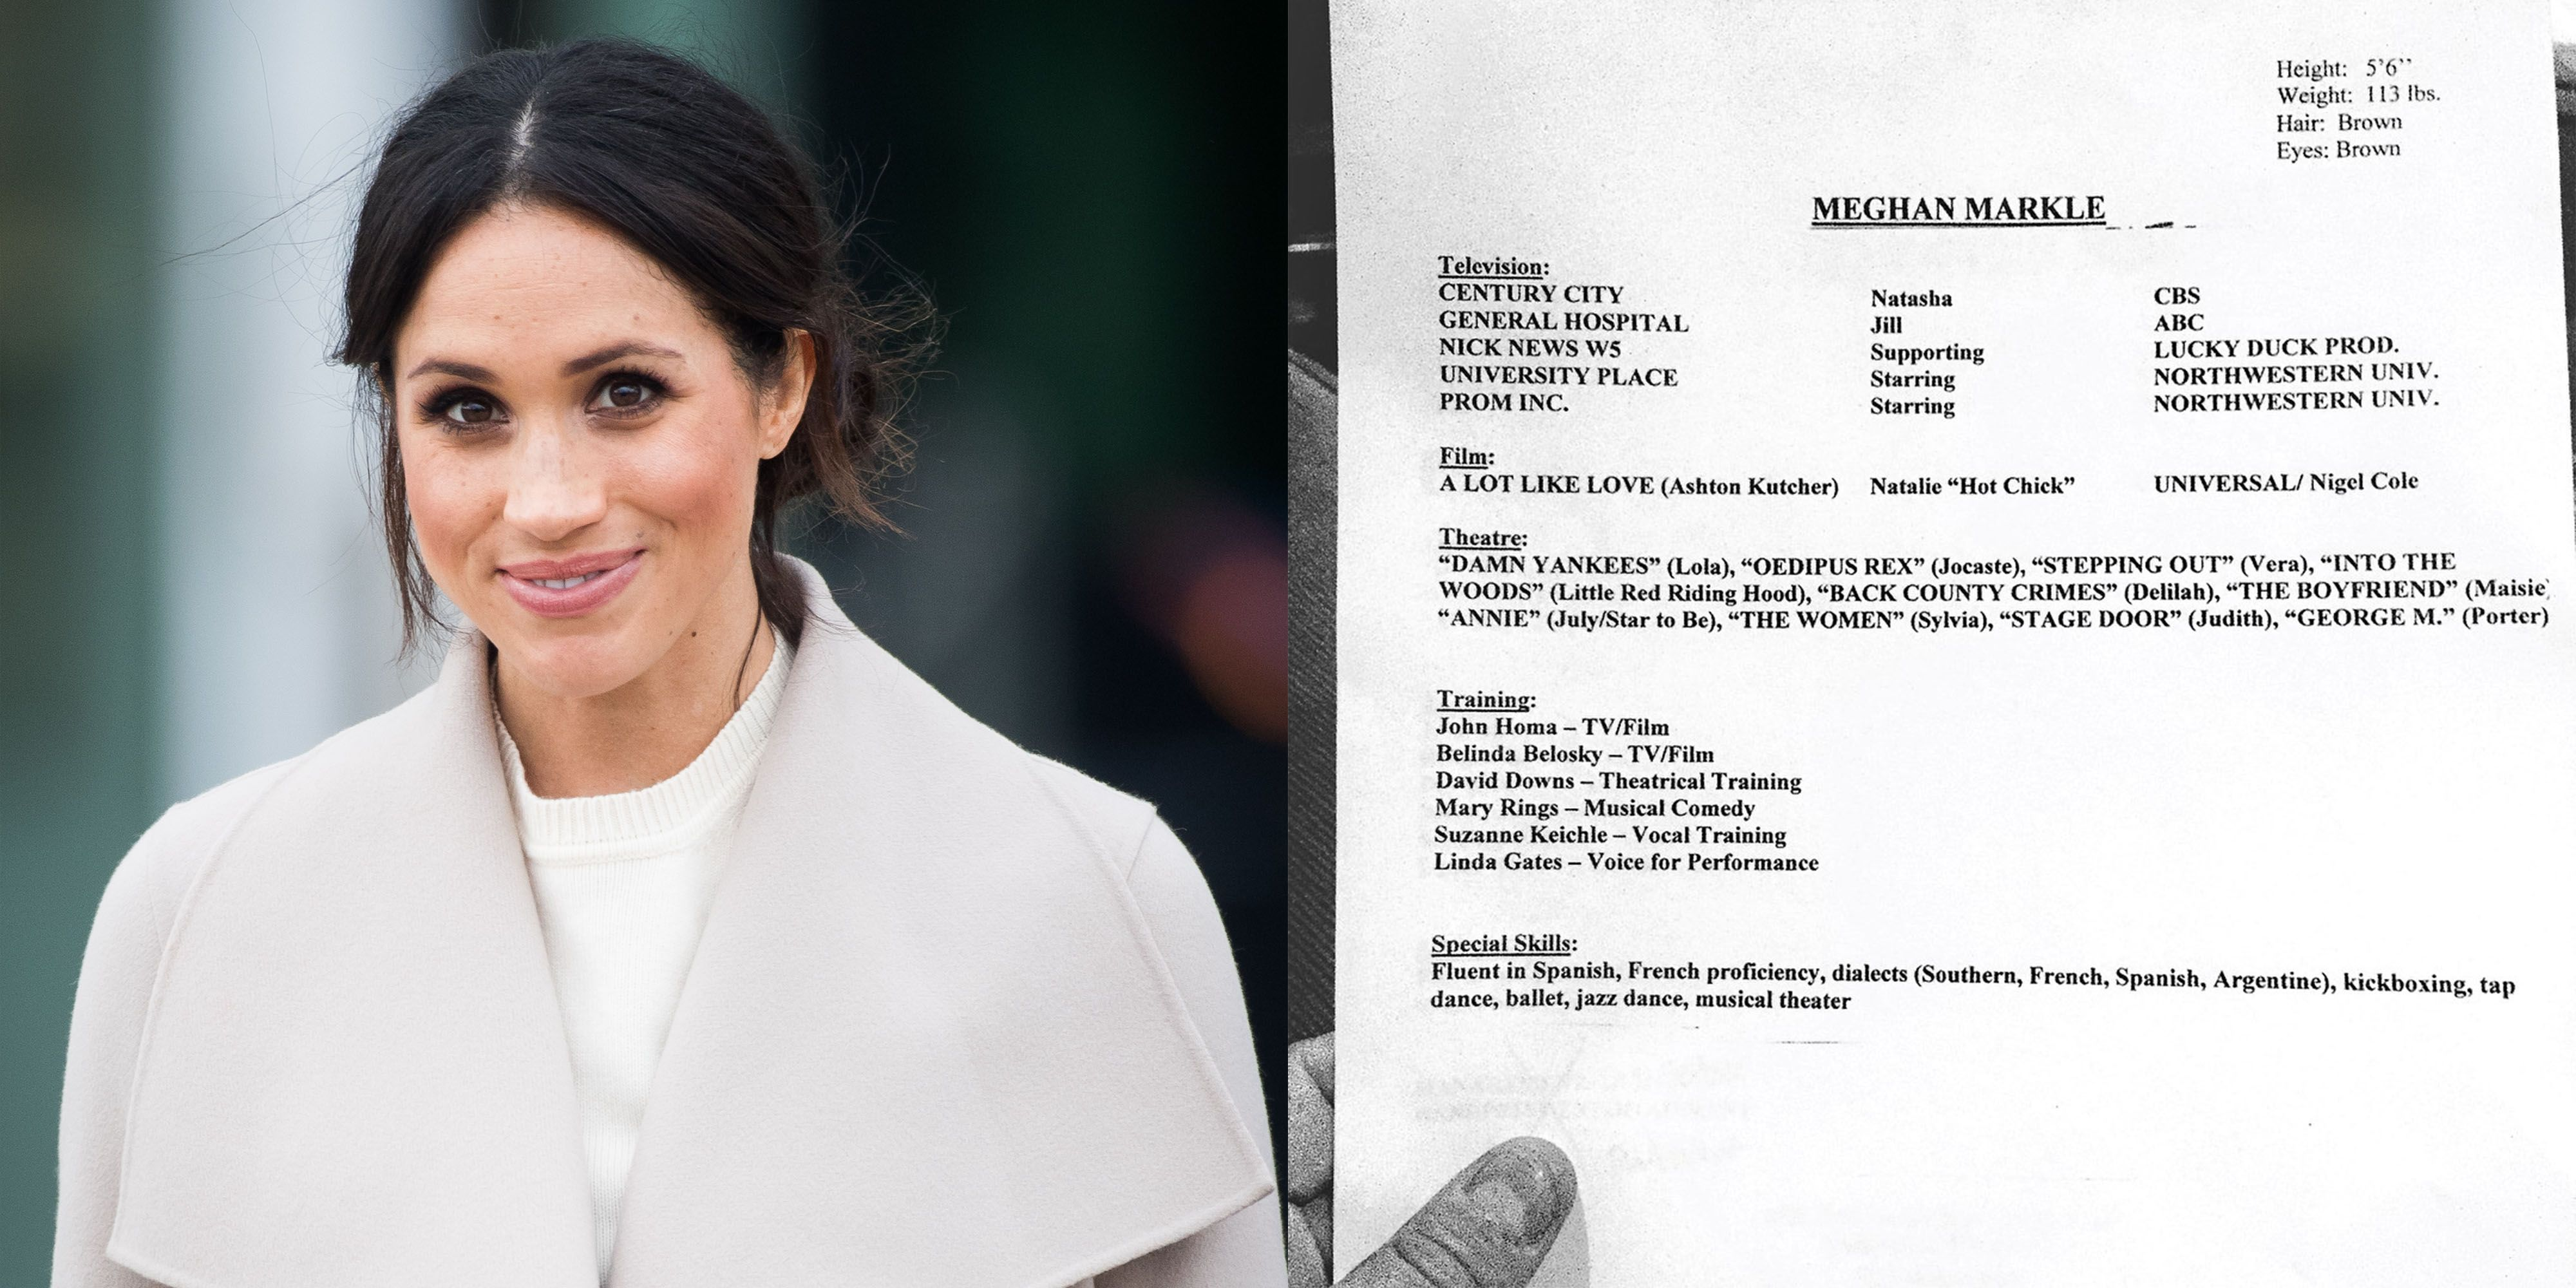 Meghan Markle S Old Acting Resume And Headshot Reveal Her Height